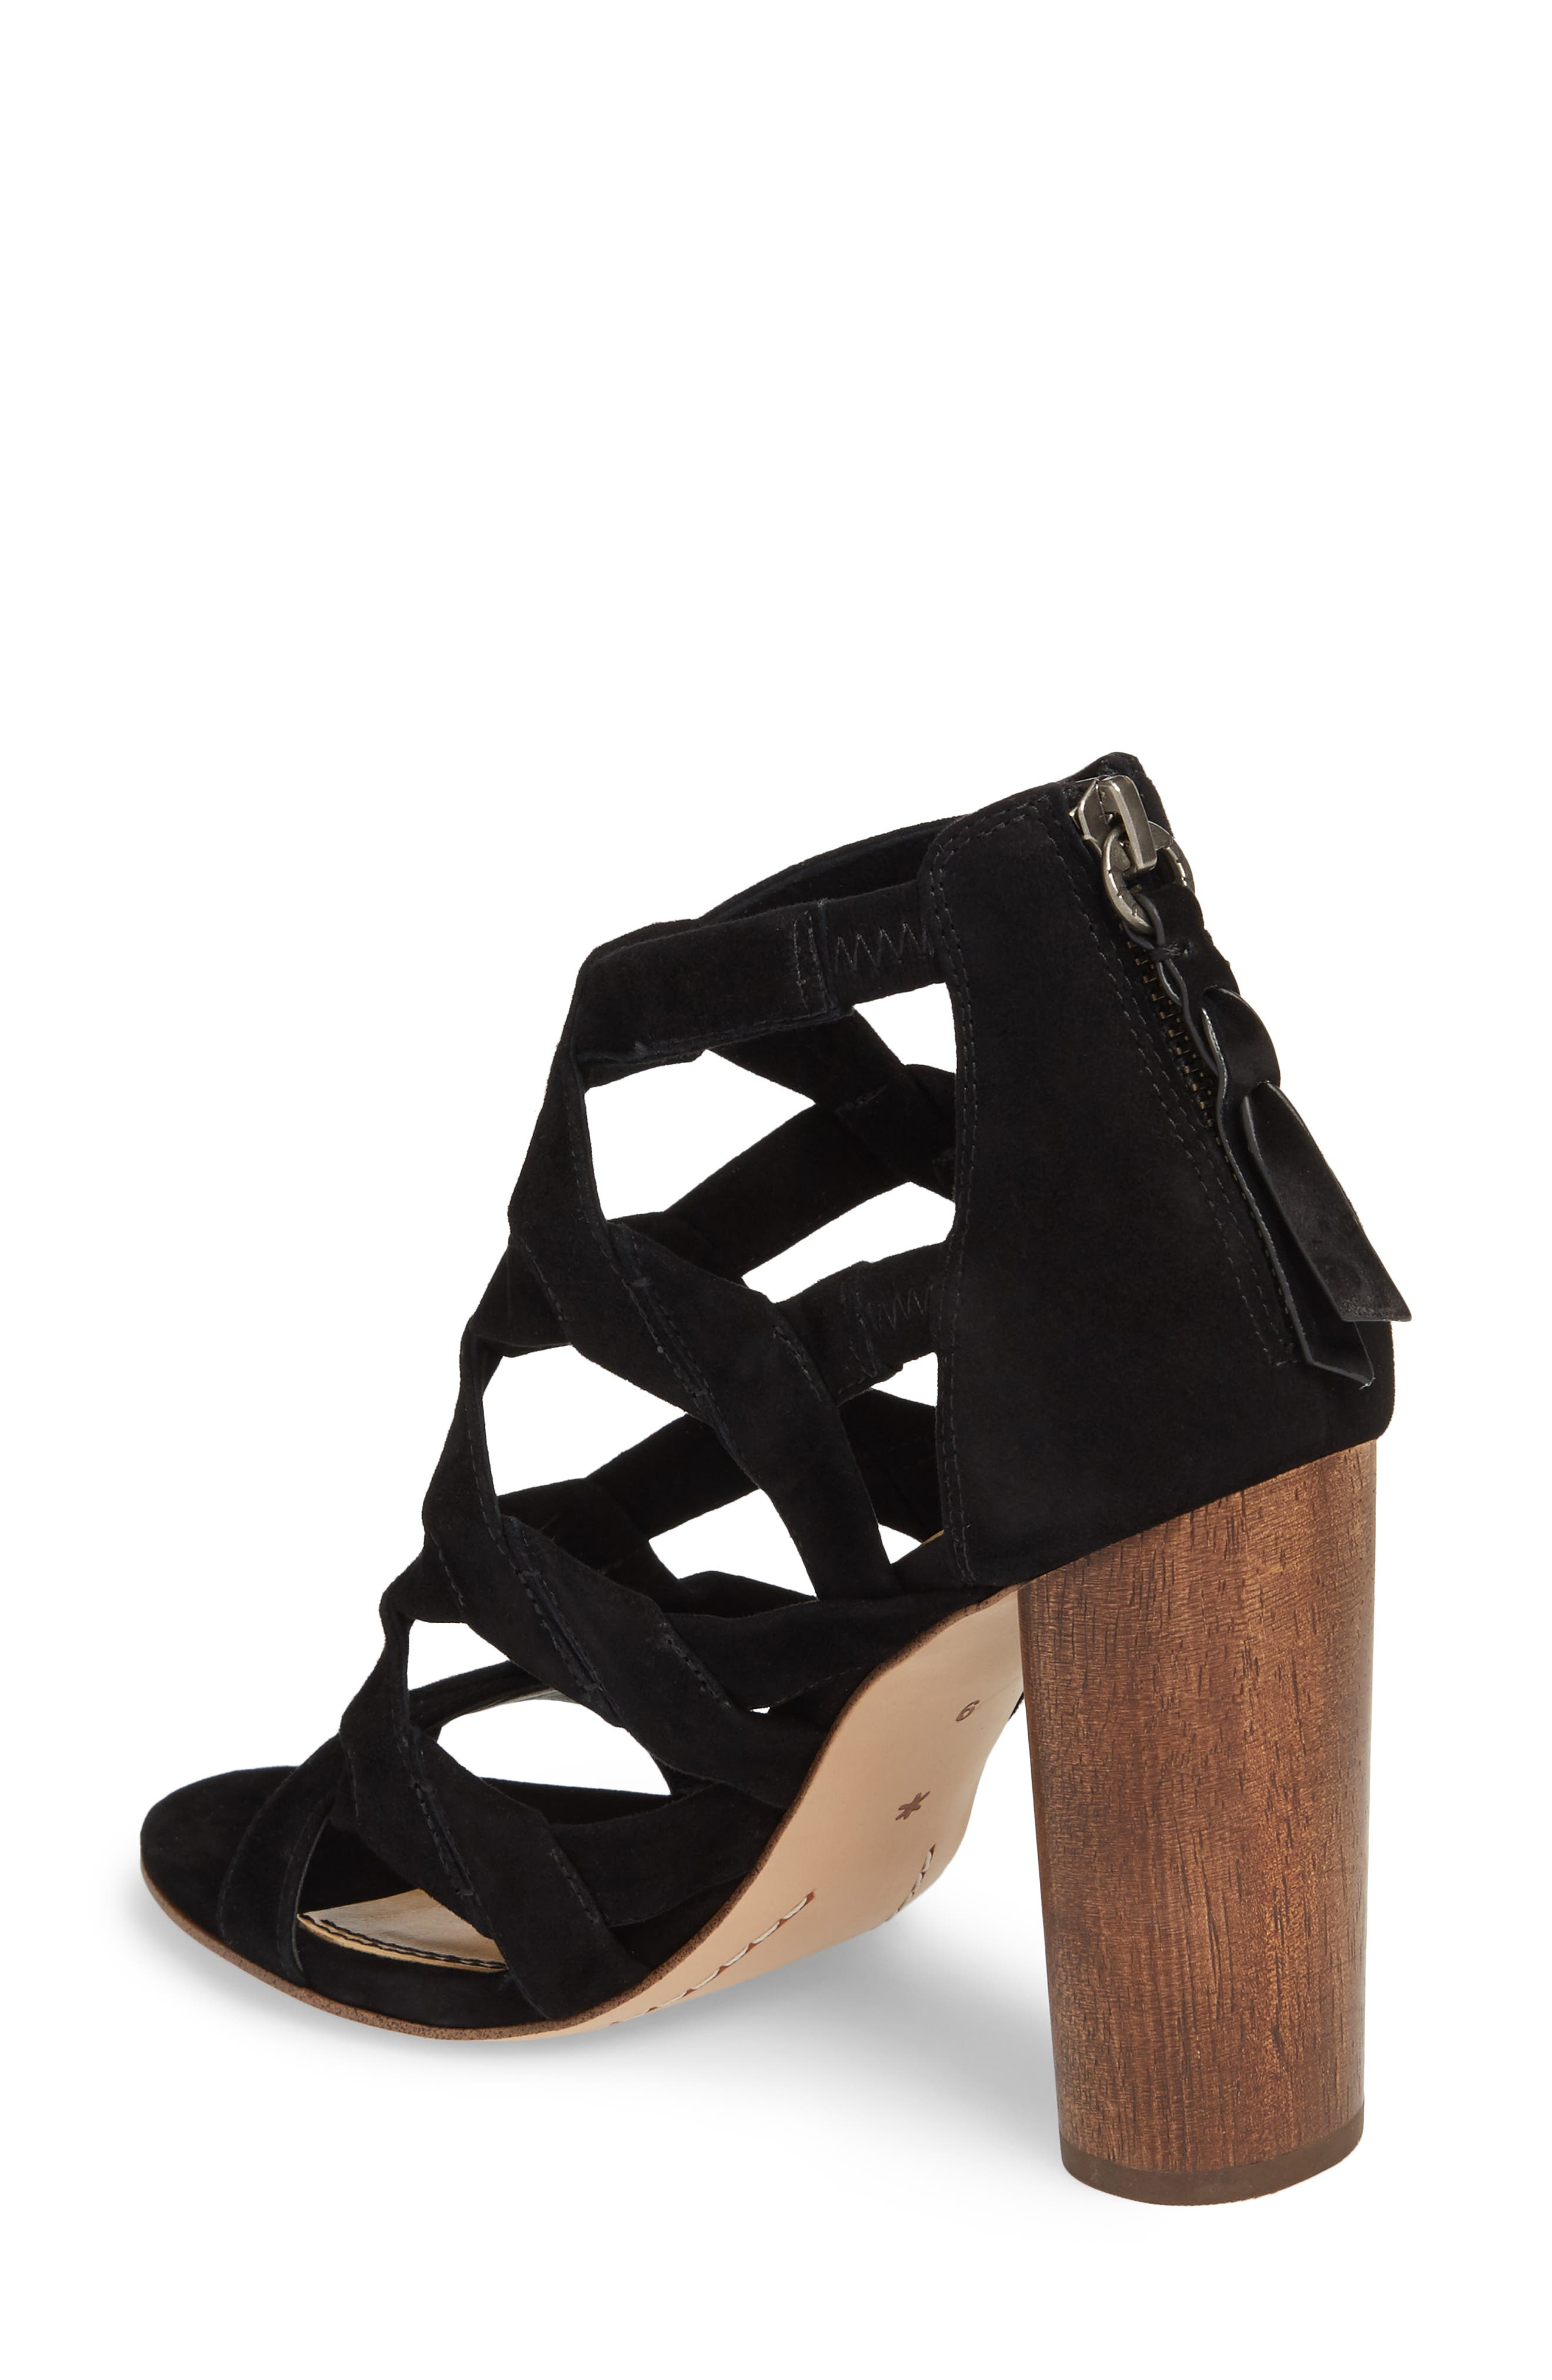 Bartlett Angled Cage Sandal,                             Alternate thumbnail 2, color,                             013